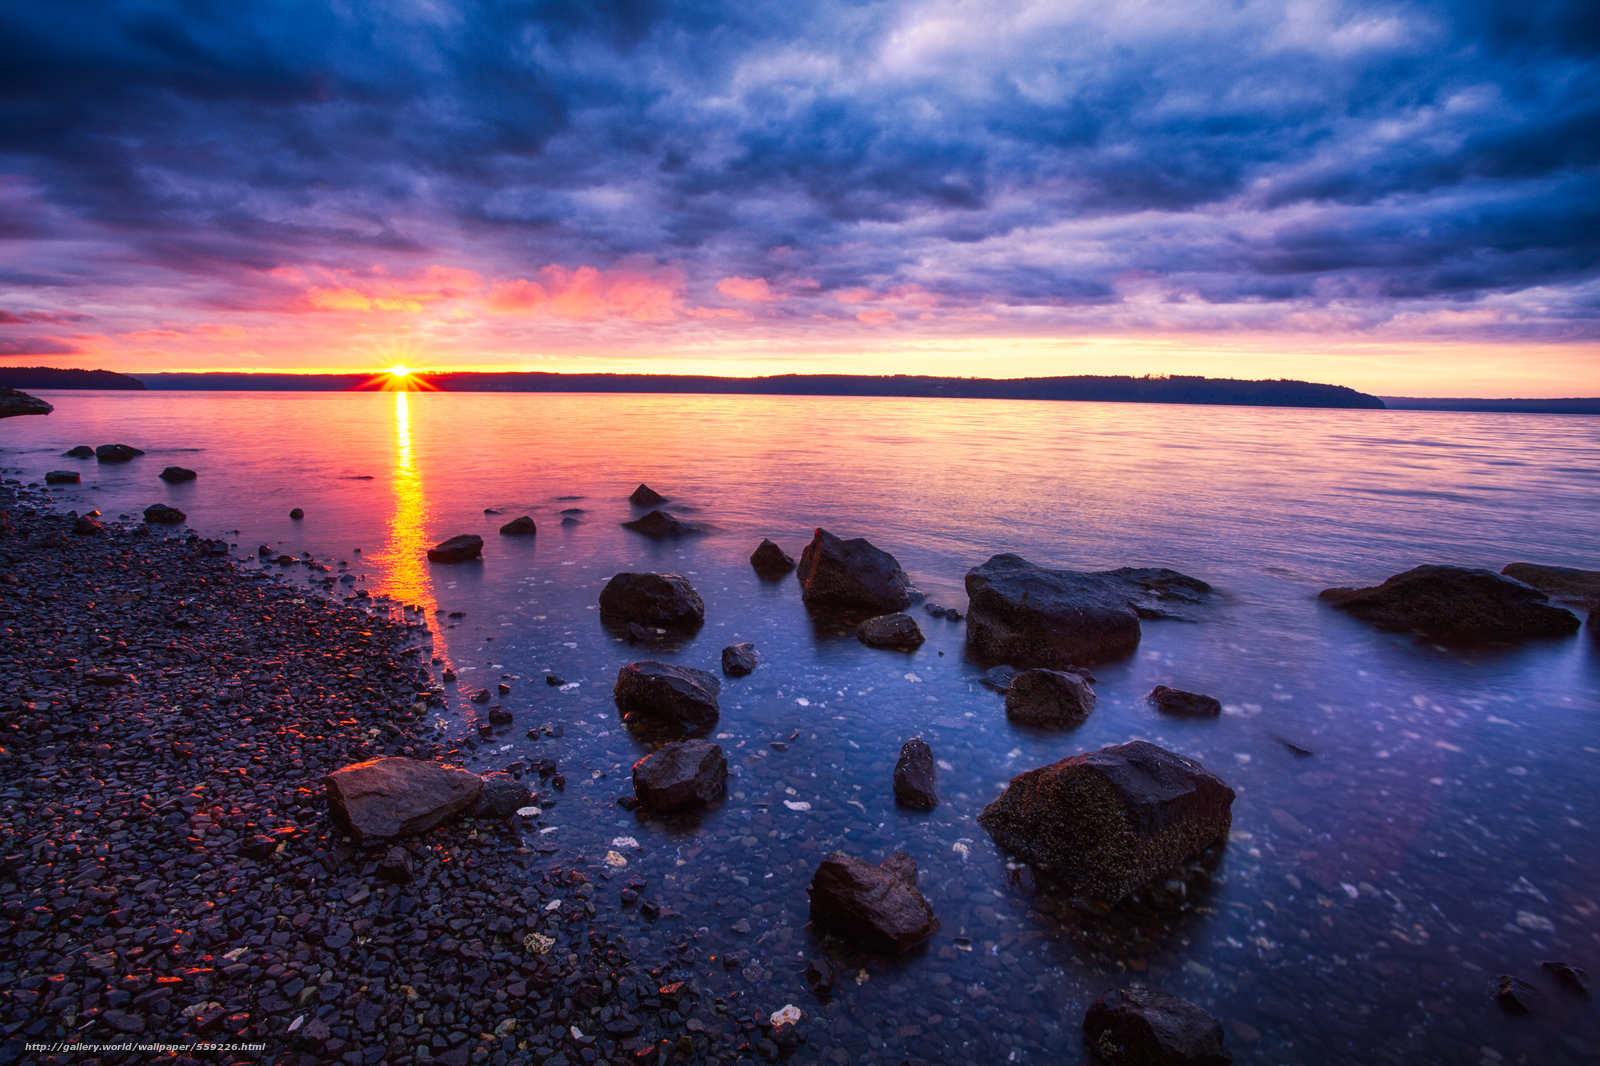 Download Wallpaper Rock Camping Washington Rise Free Desktop Wallpaper In The Resolution 2400x1599 Picture 559226